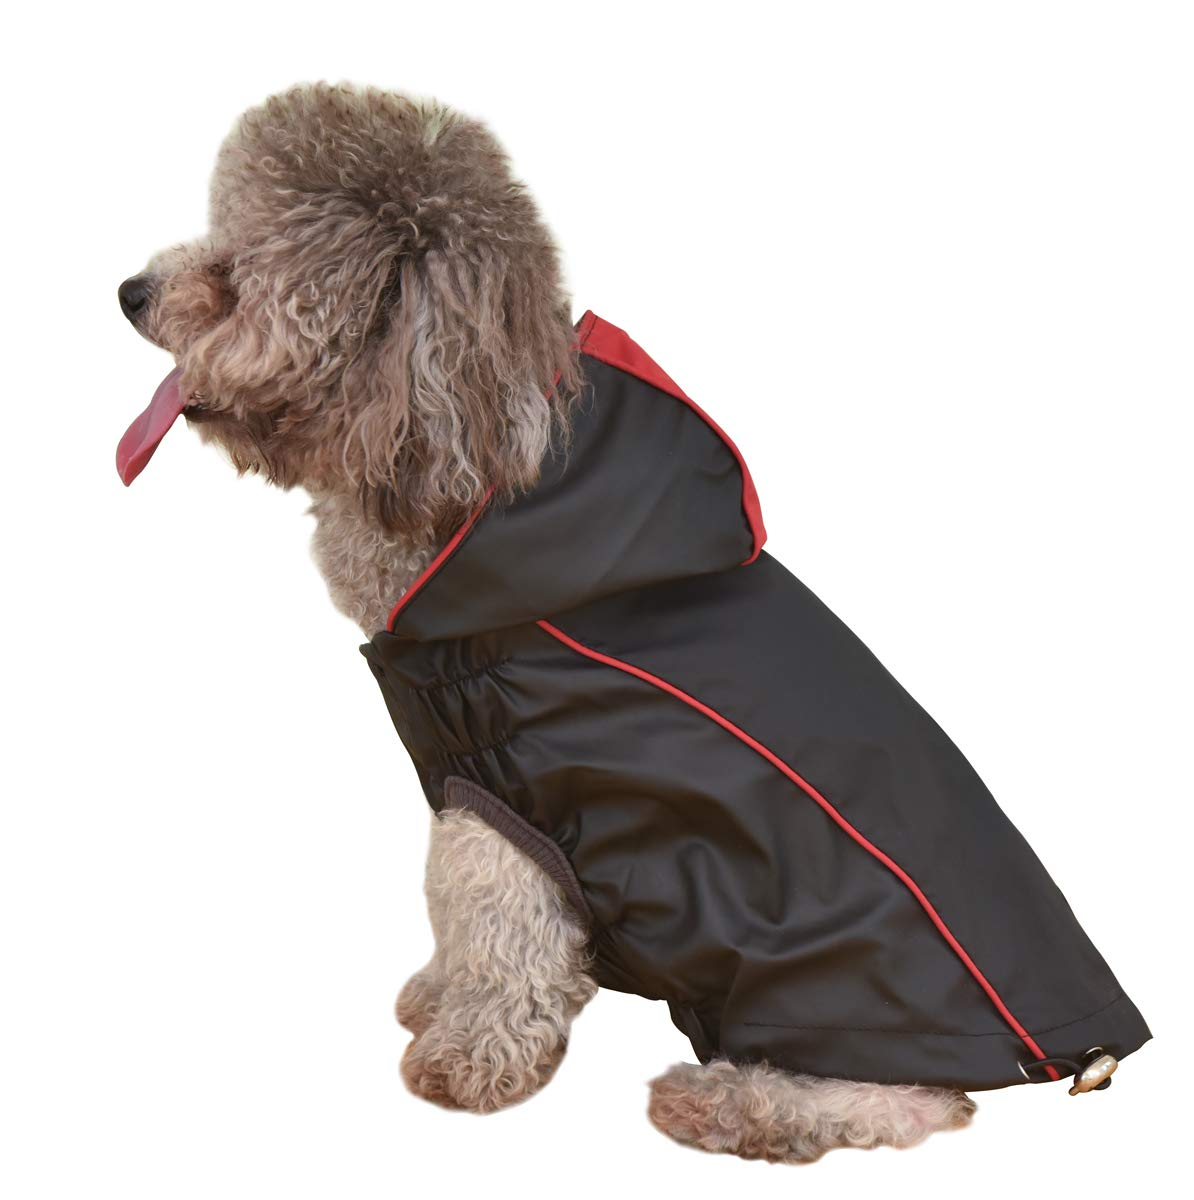 OSPet Dog Raincoat Waterproof Windproof Lightweight Dog Coat Jacket Double-Sided Jacket with Hood Vest Harness for Small Medium Dogs